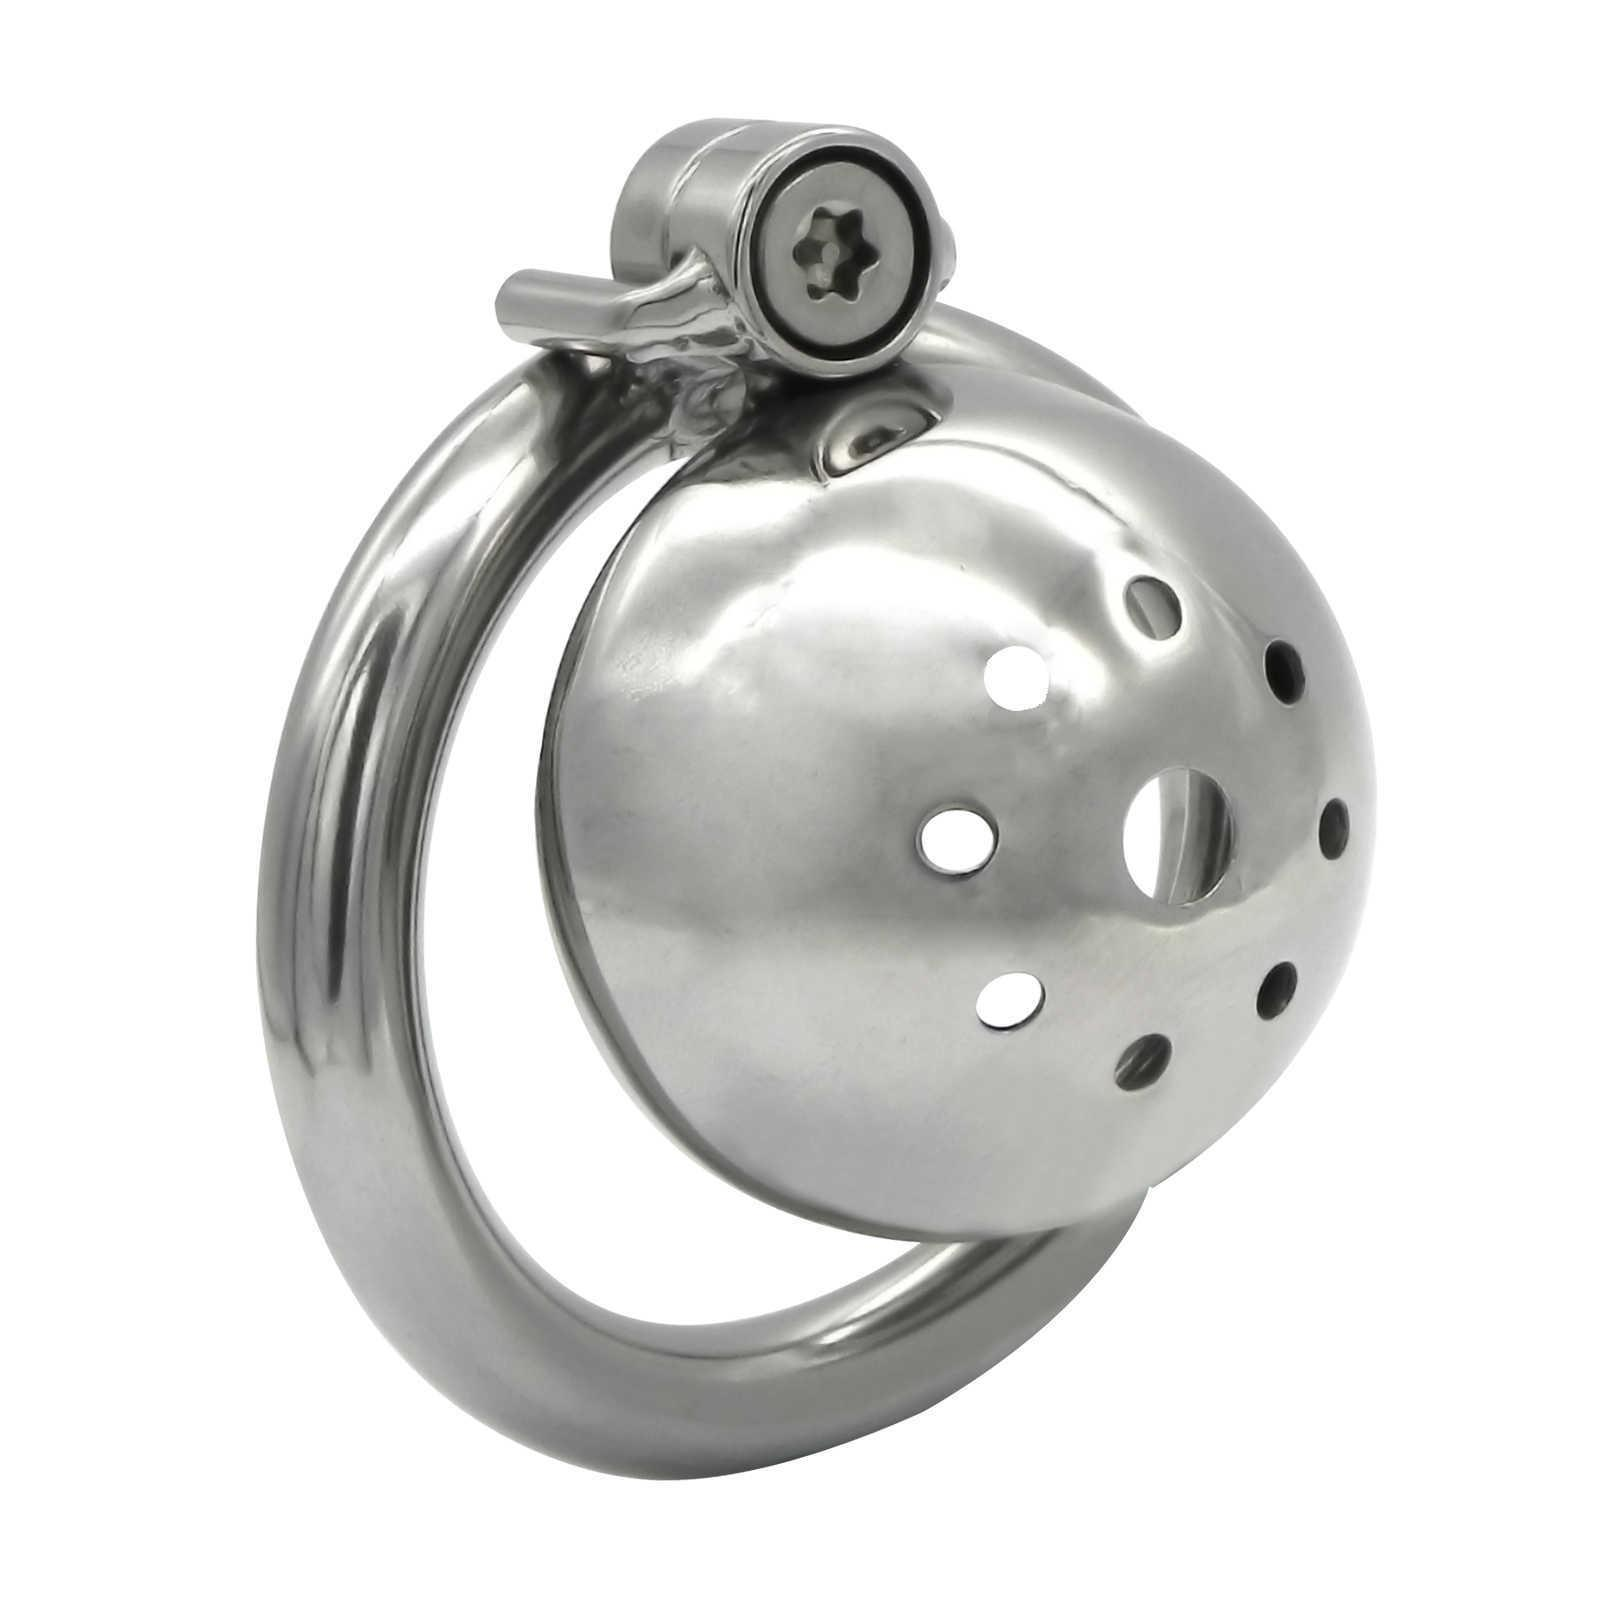 Screw Lock Ergonomic Design Stainless Steel Male Chastity Device Super Small Cock Cage Penis lock Cock Ring Chastity Belt S093 210629